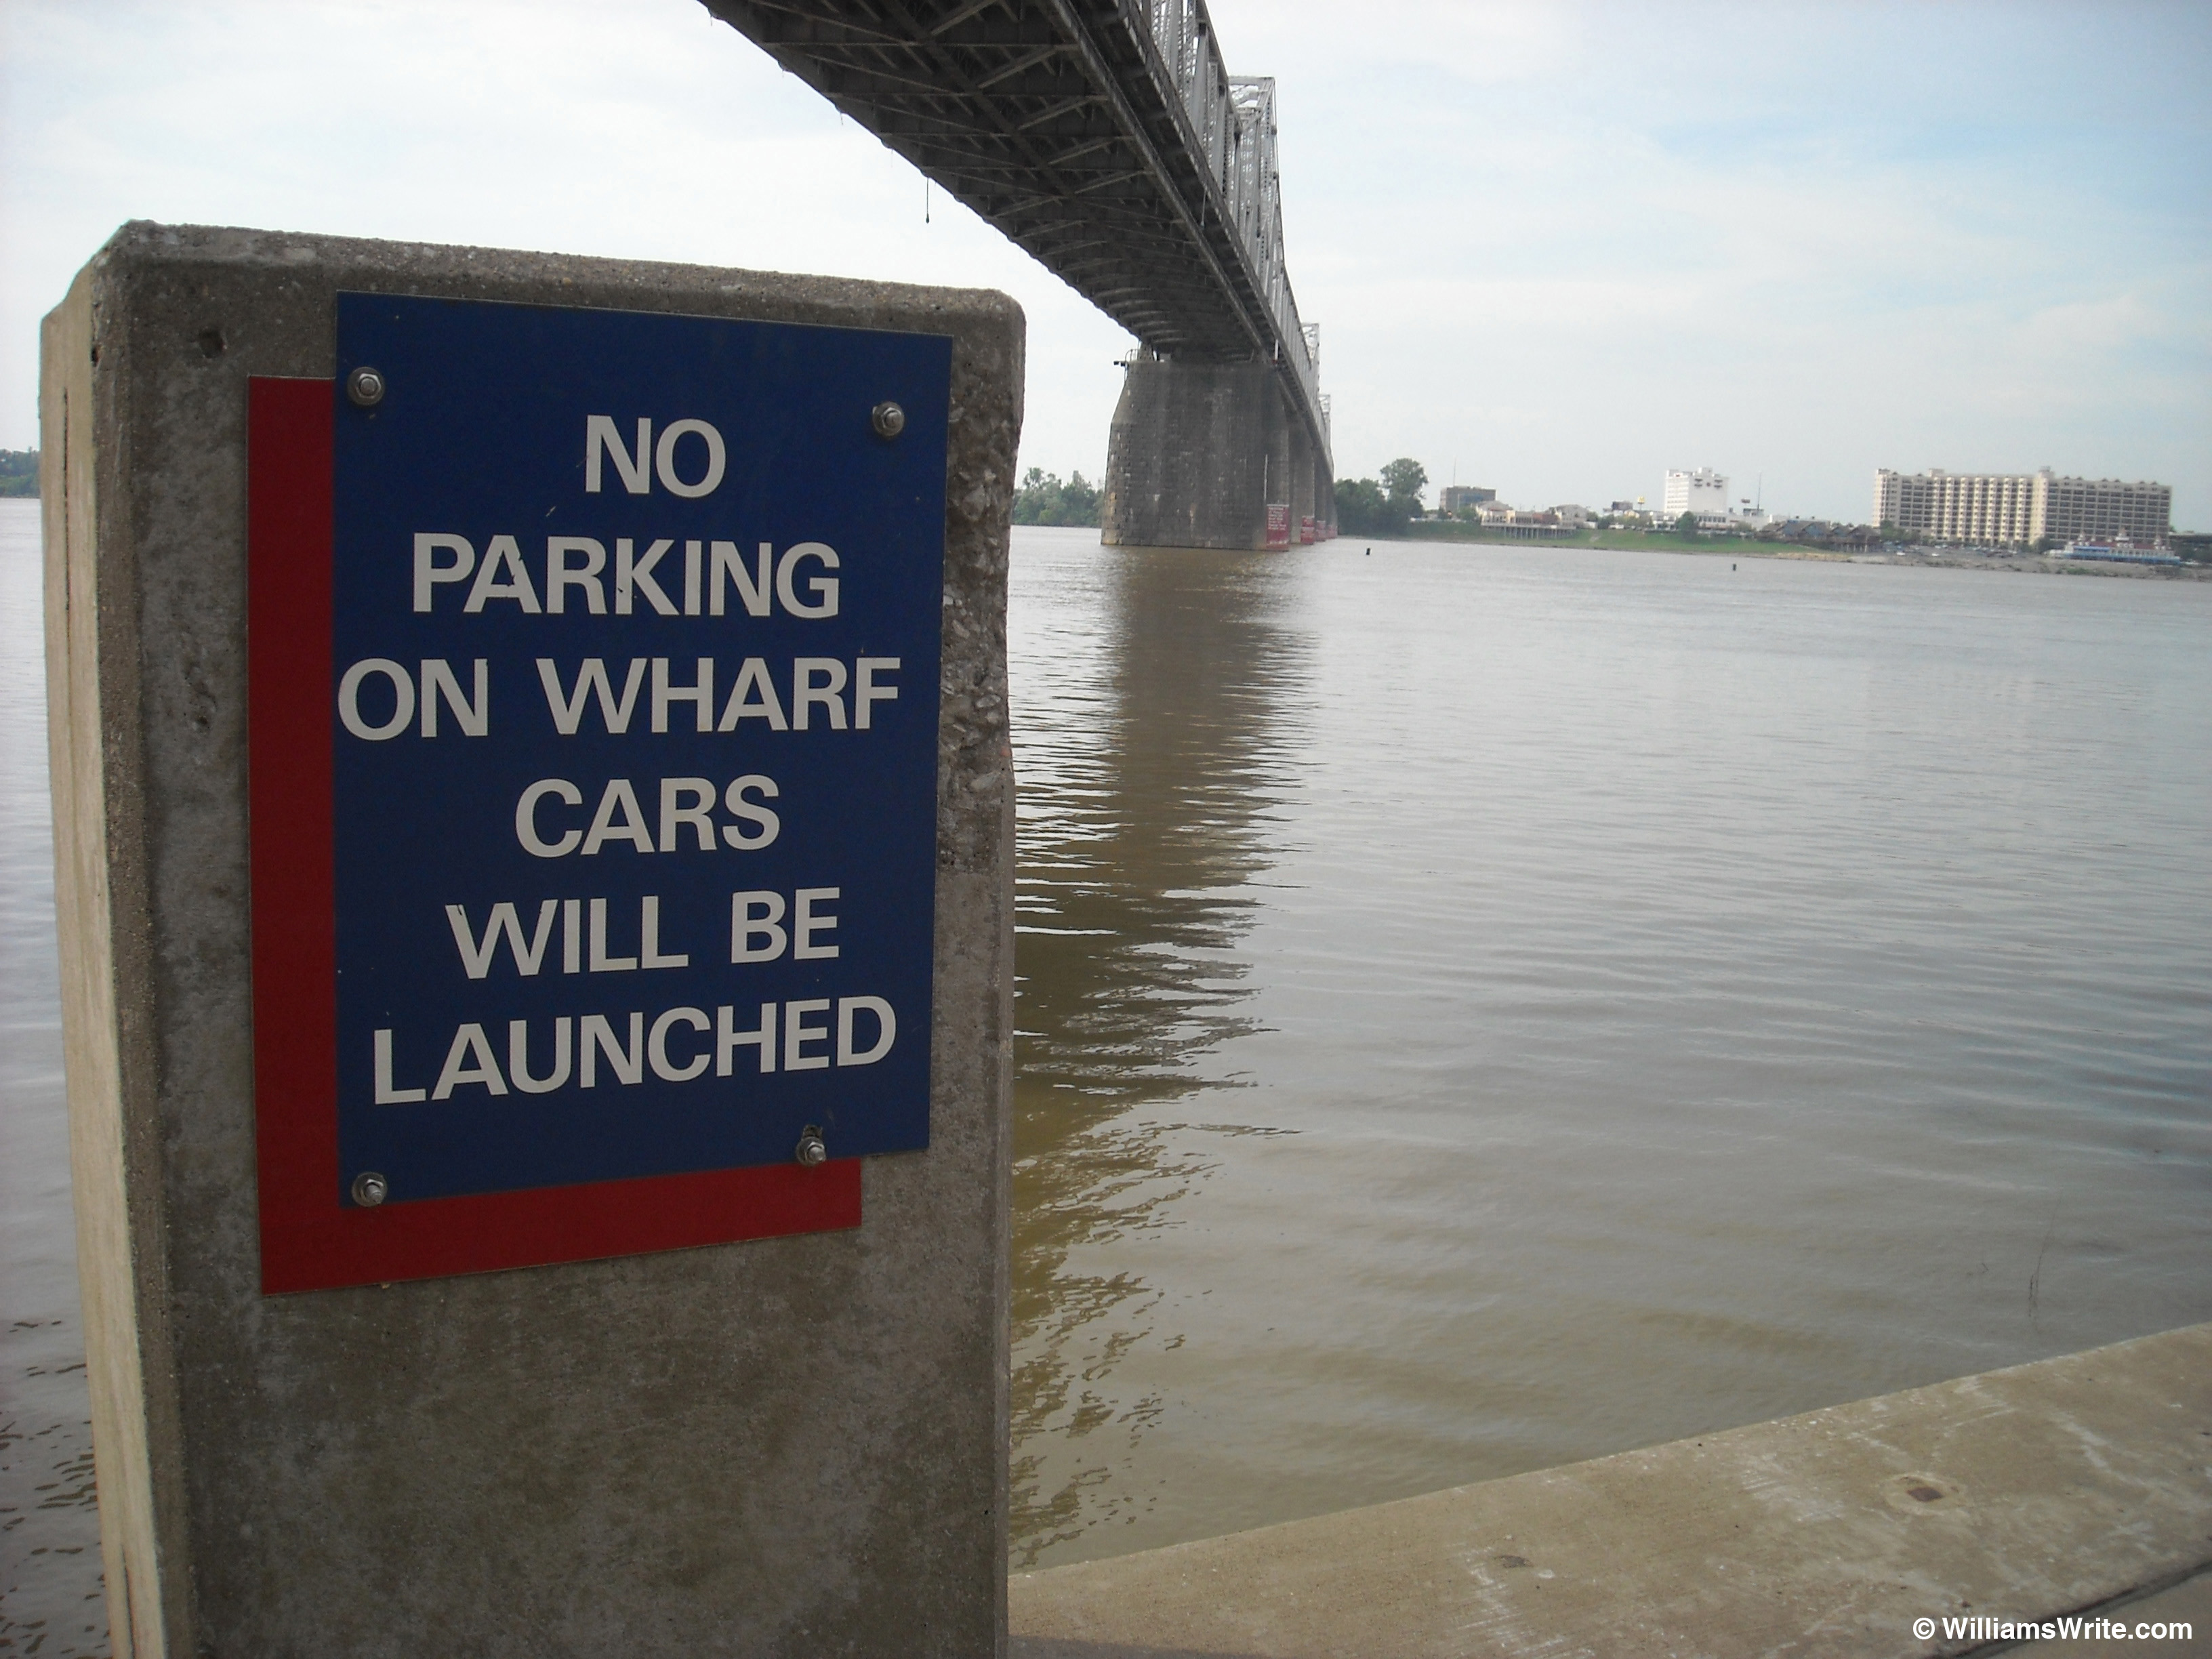 Cars Will Be Launched (Louisville, Kentucky - 8 June 2009)